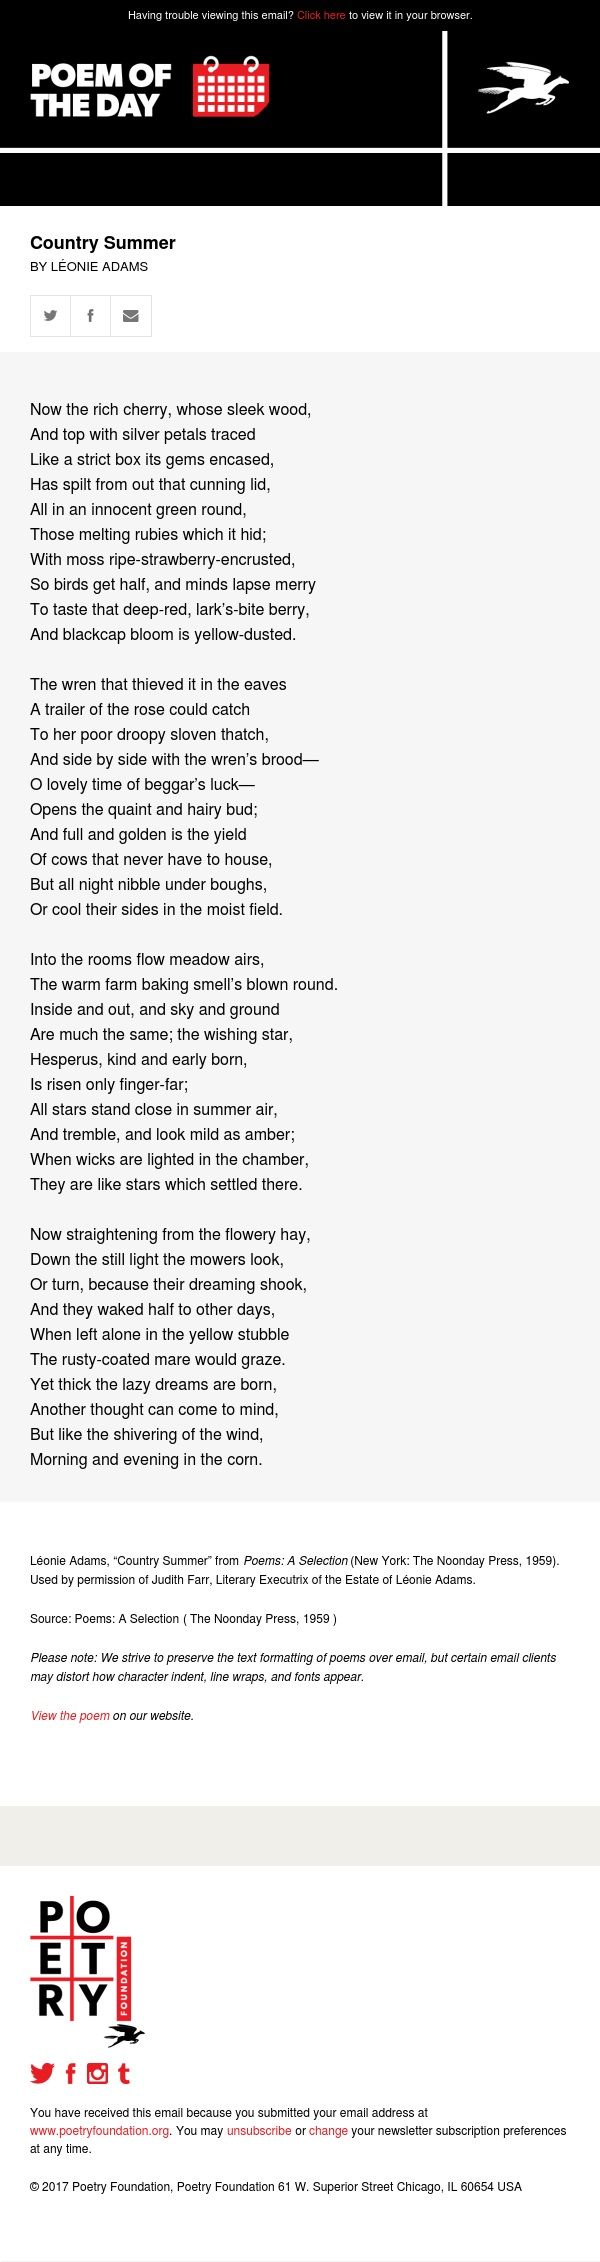 Poem of the Day: Country Summer